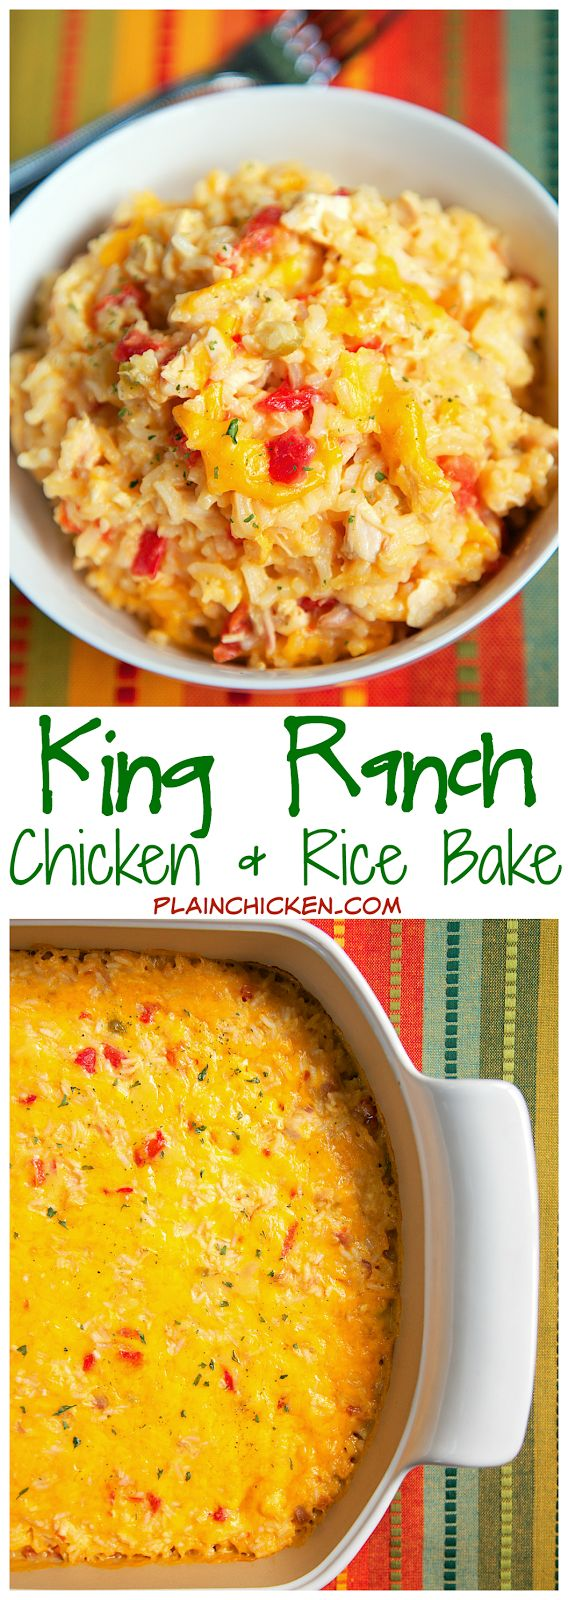 25+ Best Ideas About Chicken Rice Bake On Pinterest  Cheesy Chicken  Casserole, Chicken Rice Casserole And Creamy Chicken And Rice